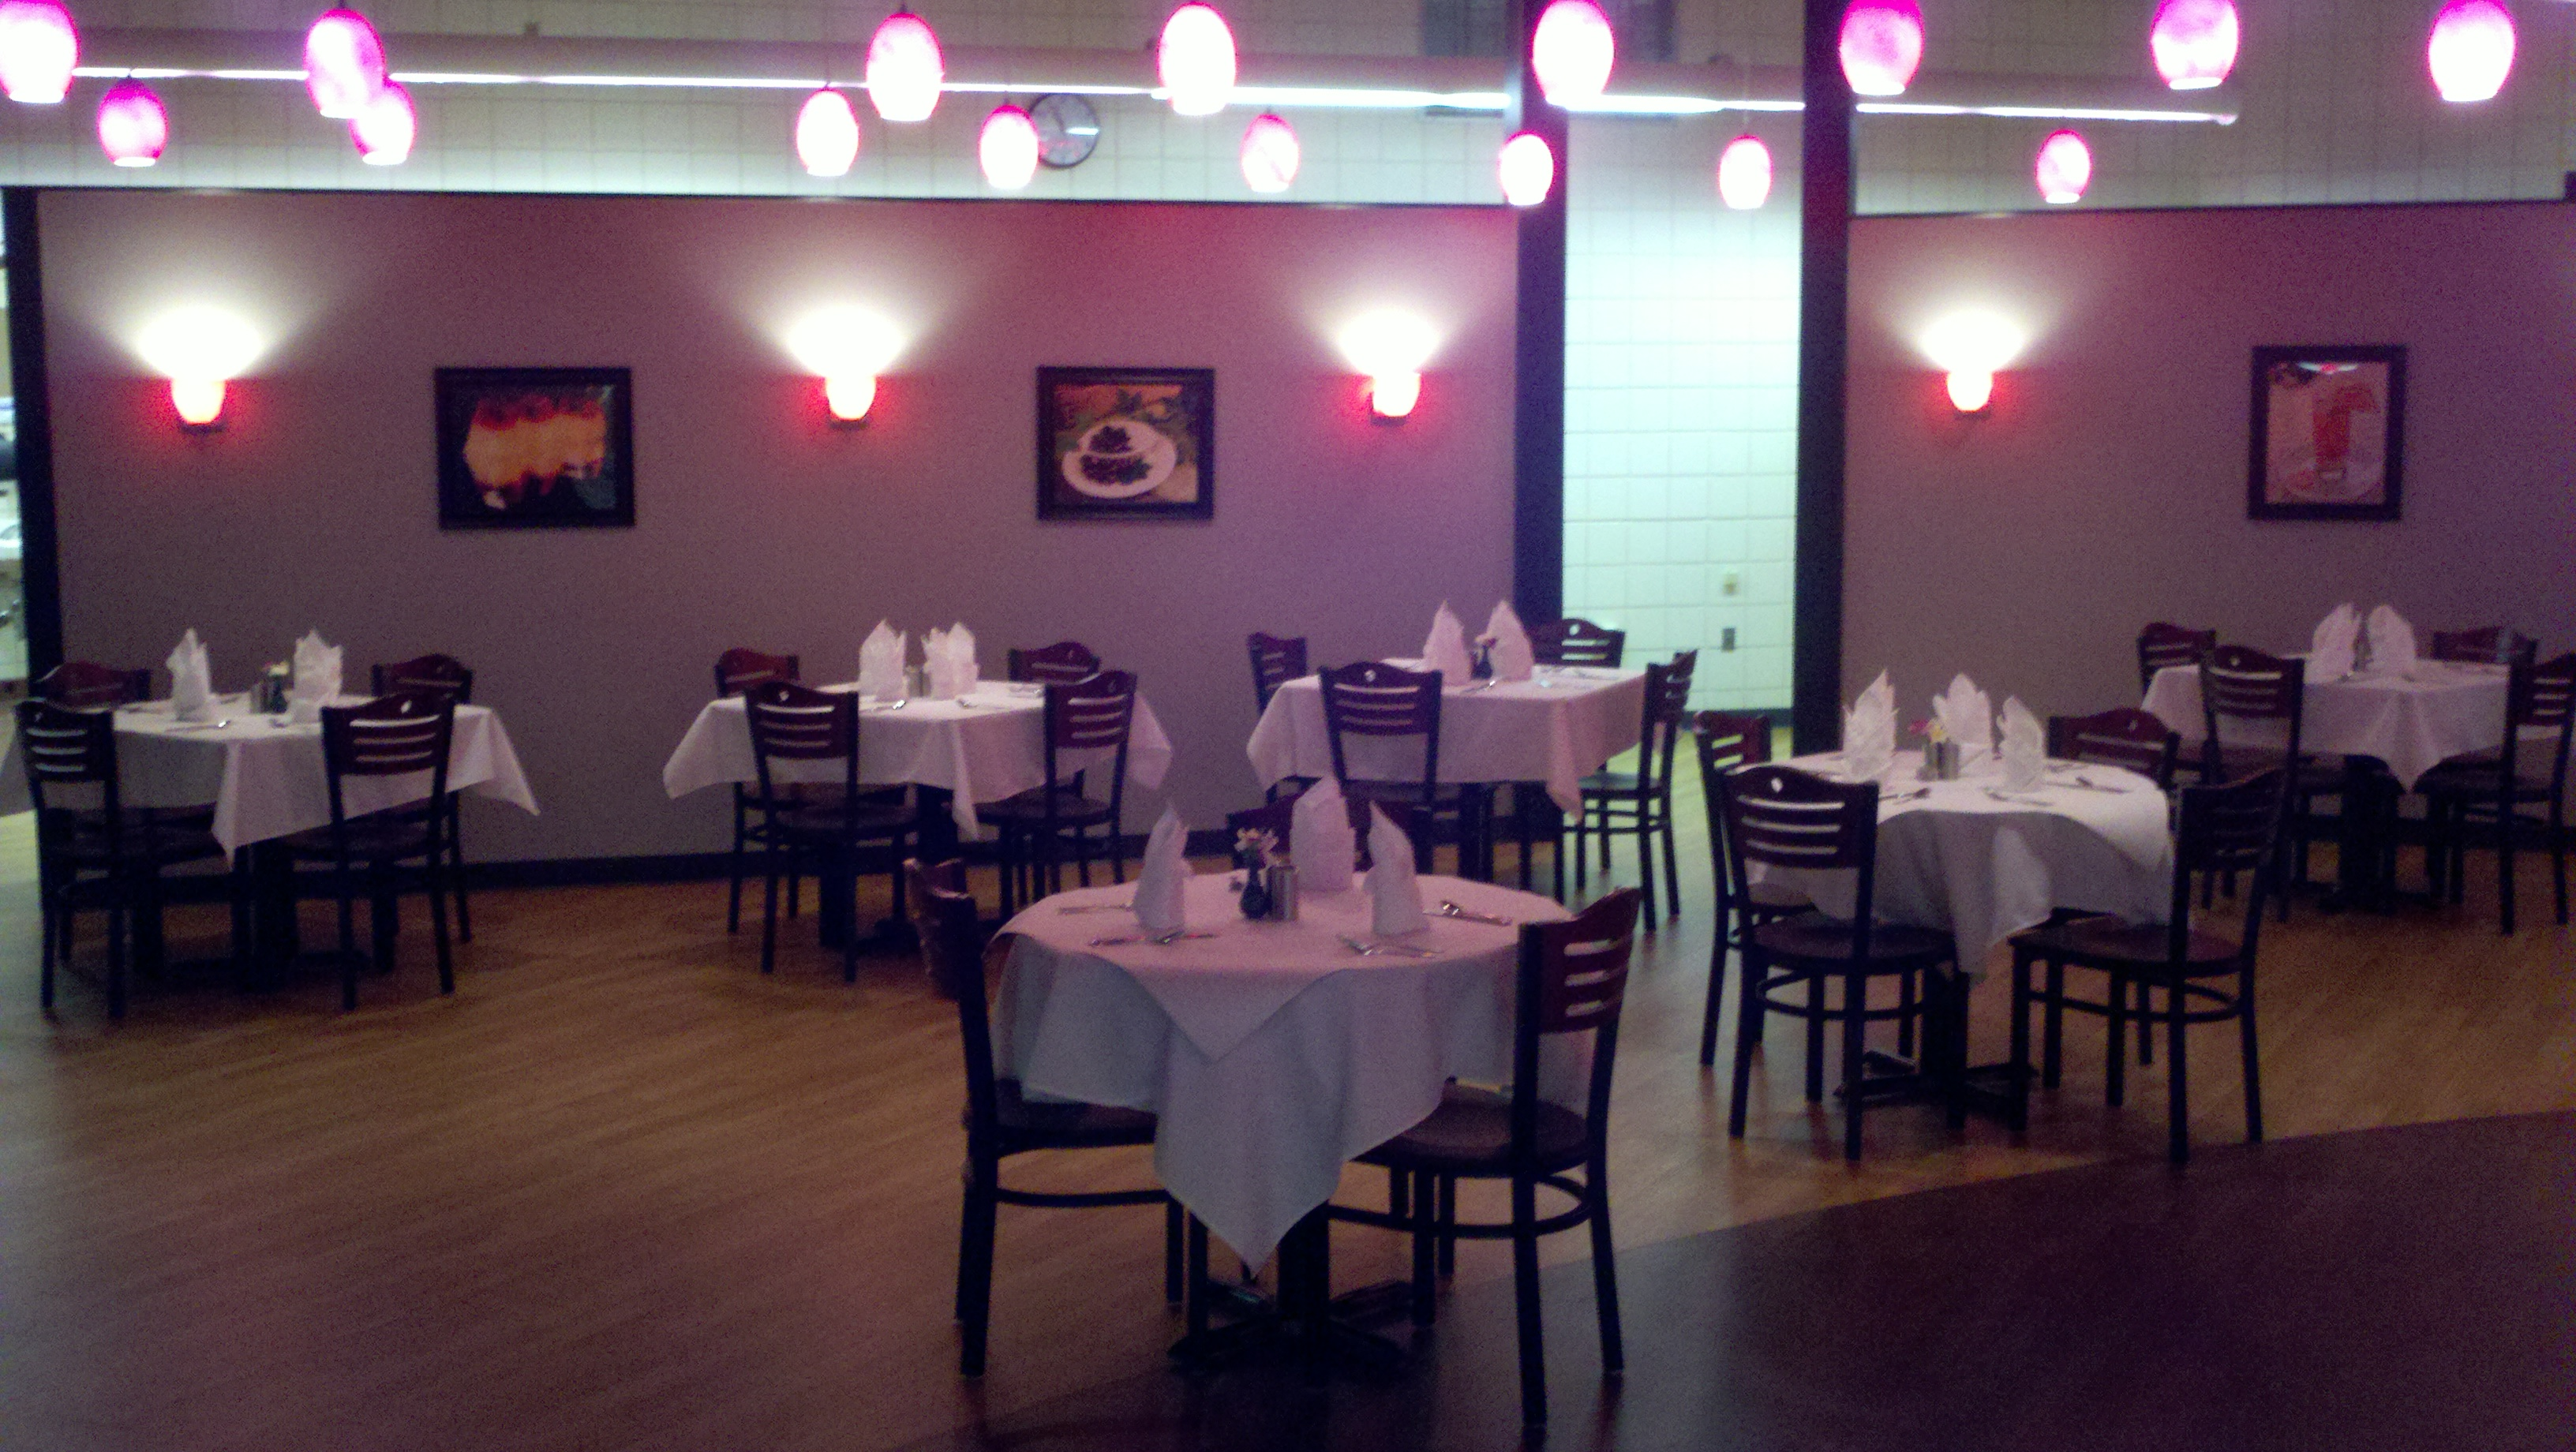 Blue apron restaurant - The Blue Apron Located Inside The Warsaw Area Career Center Is A Tapas Style Restaurant That Gives Students A Hands On Experience With Working In A